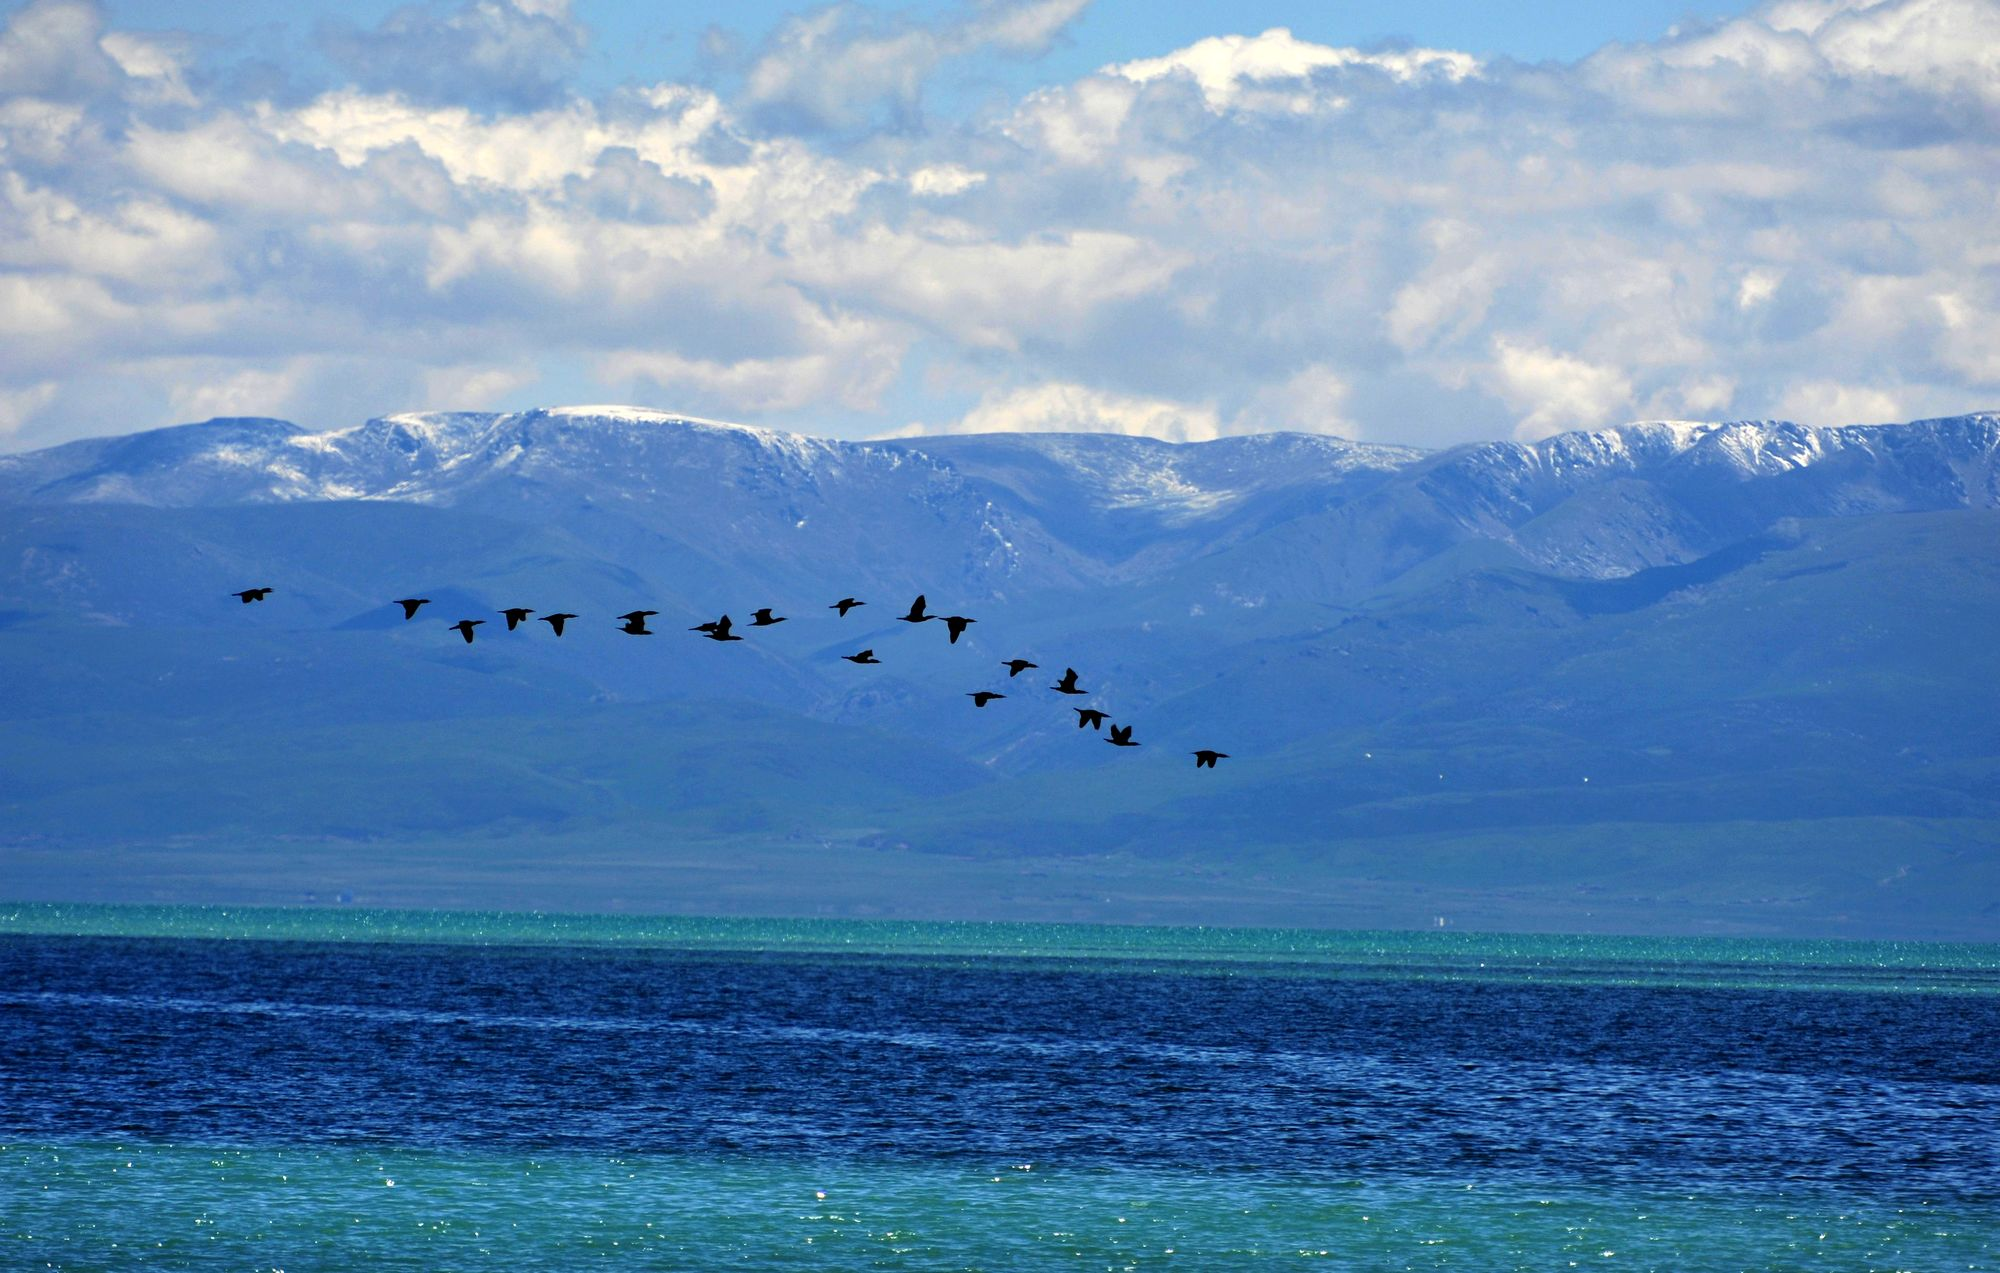 Chinese scientists uncover variations of lakes on Qinghai-Tibet plateau